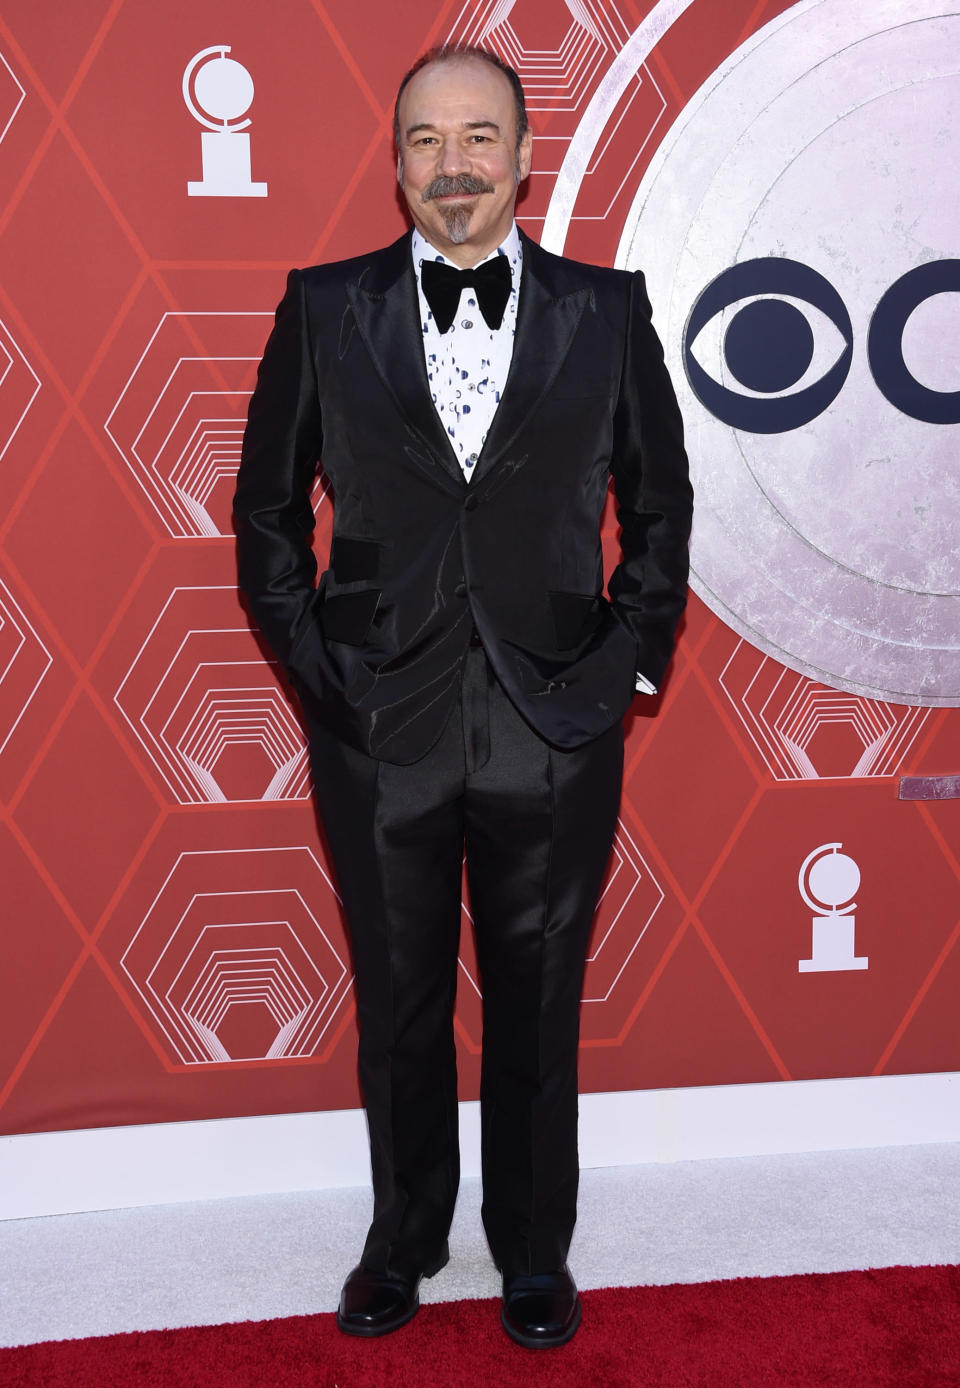 Danny Burstein arrives at the 74th annual Tony Awards at Winter Garden Theatre on Sunday, Sept. 26, 2021, in New York. (Photo by Evan Agostini/Invision/AP)